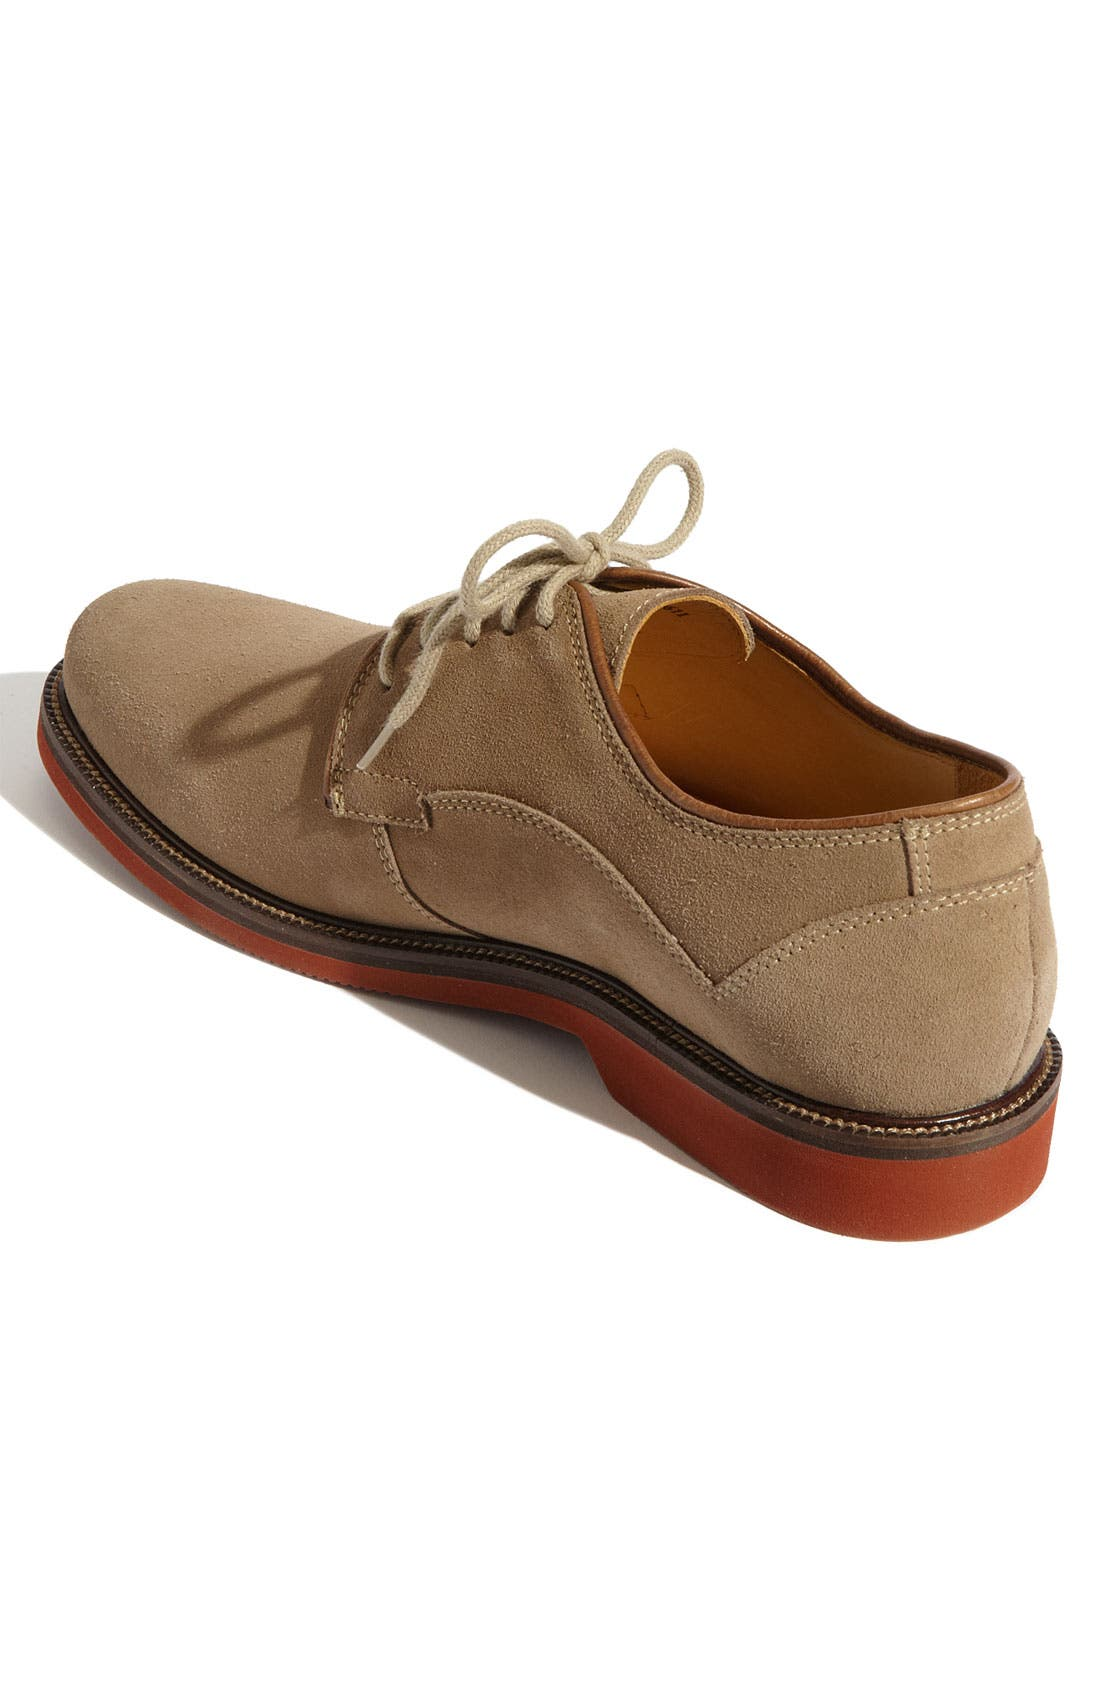 Alternate Image 2  - 1901 'Logan' Oxford (Men)